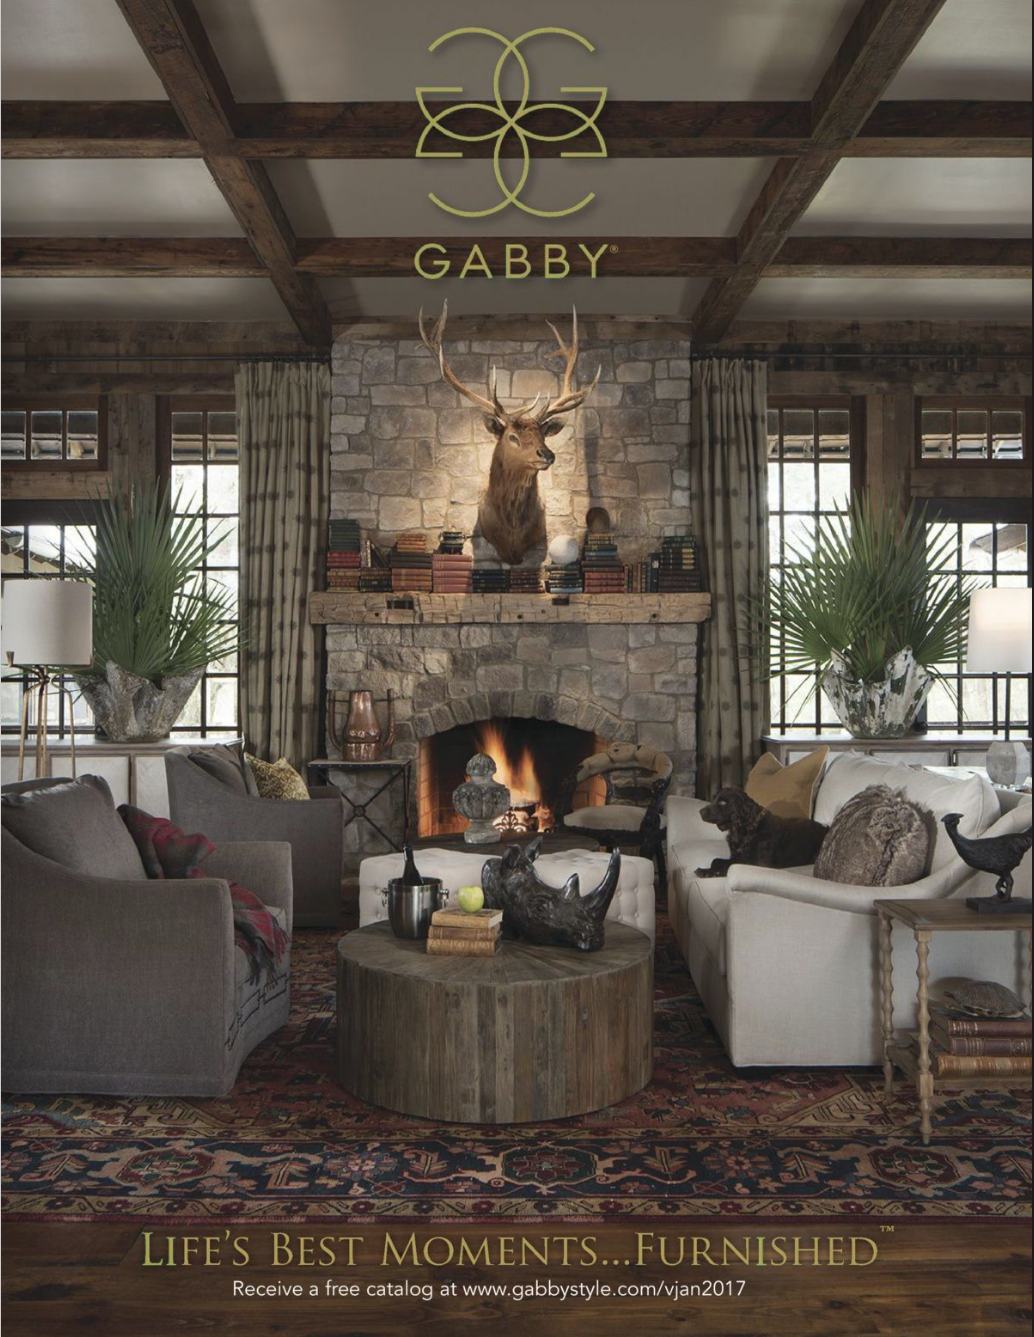 Full page ad in February 2017 issue of Veranda Magazine for Gabby Home.